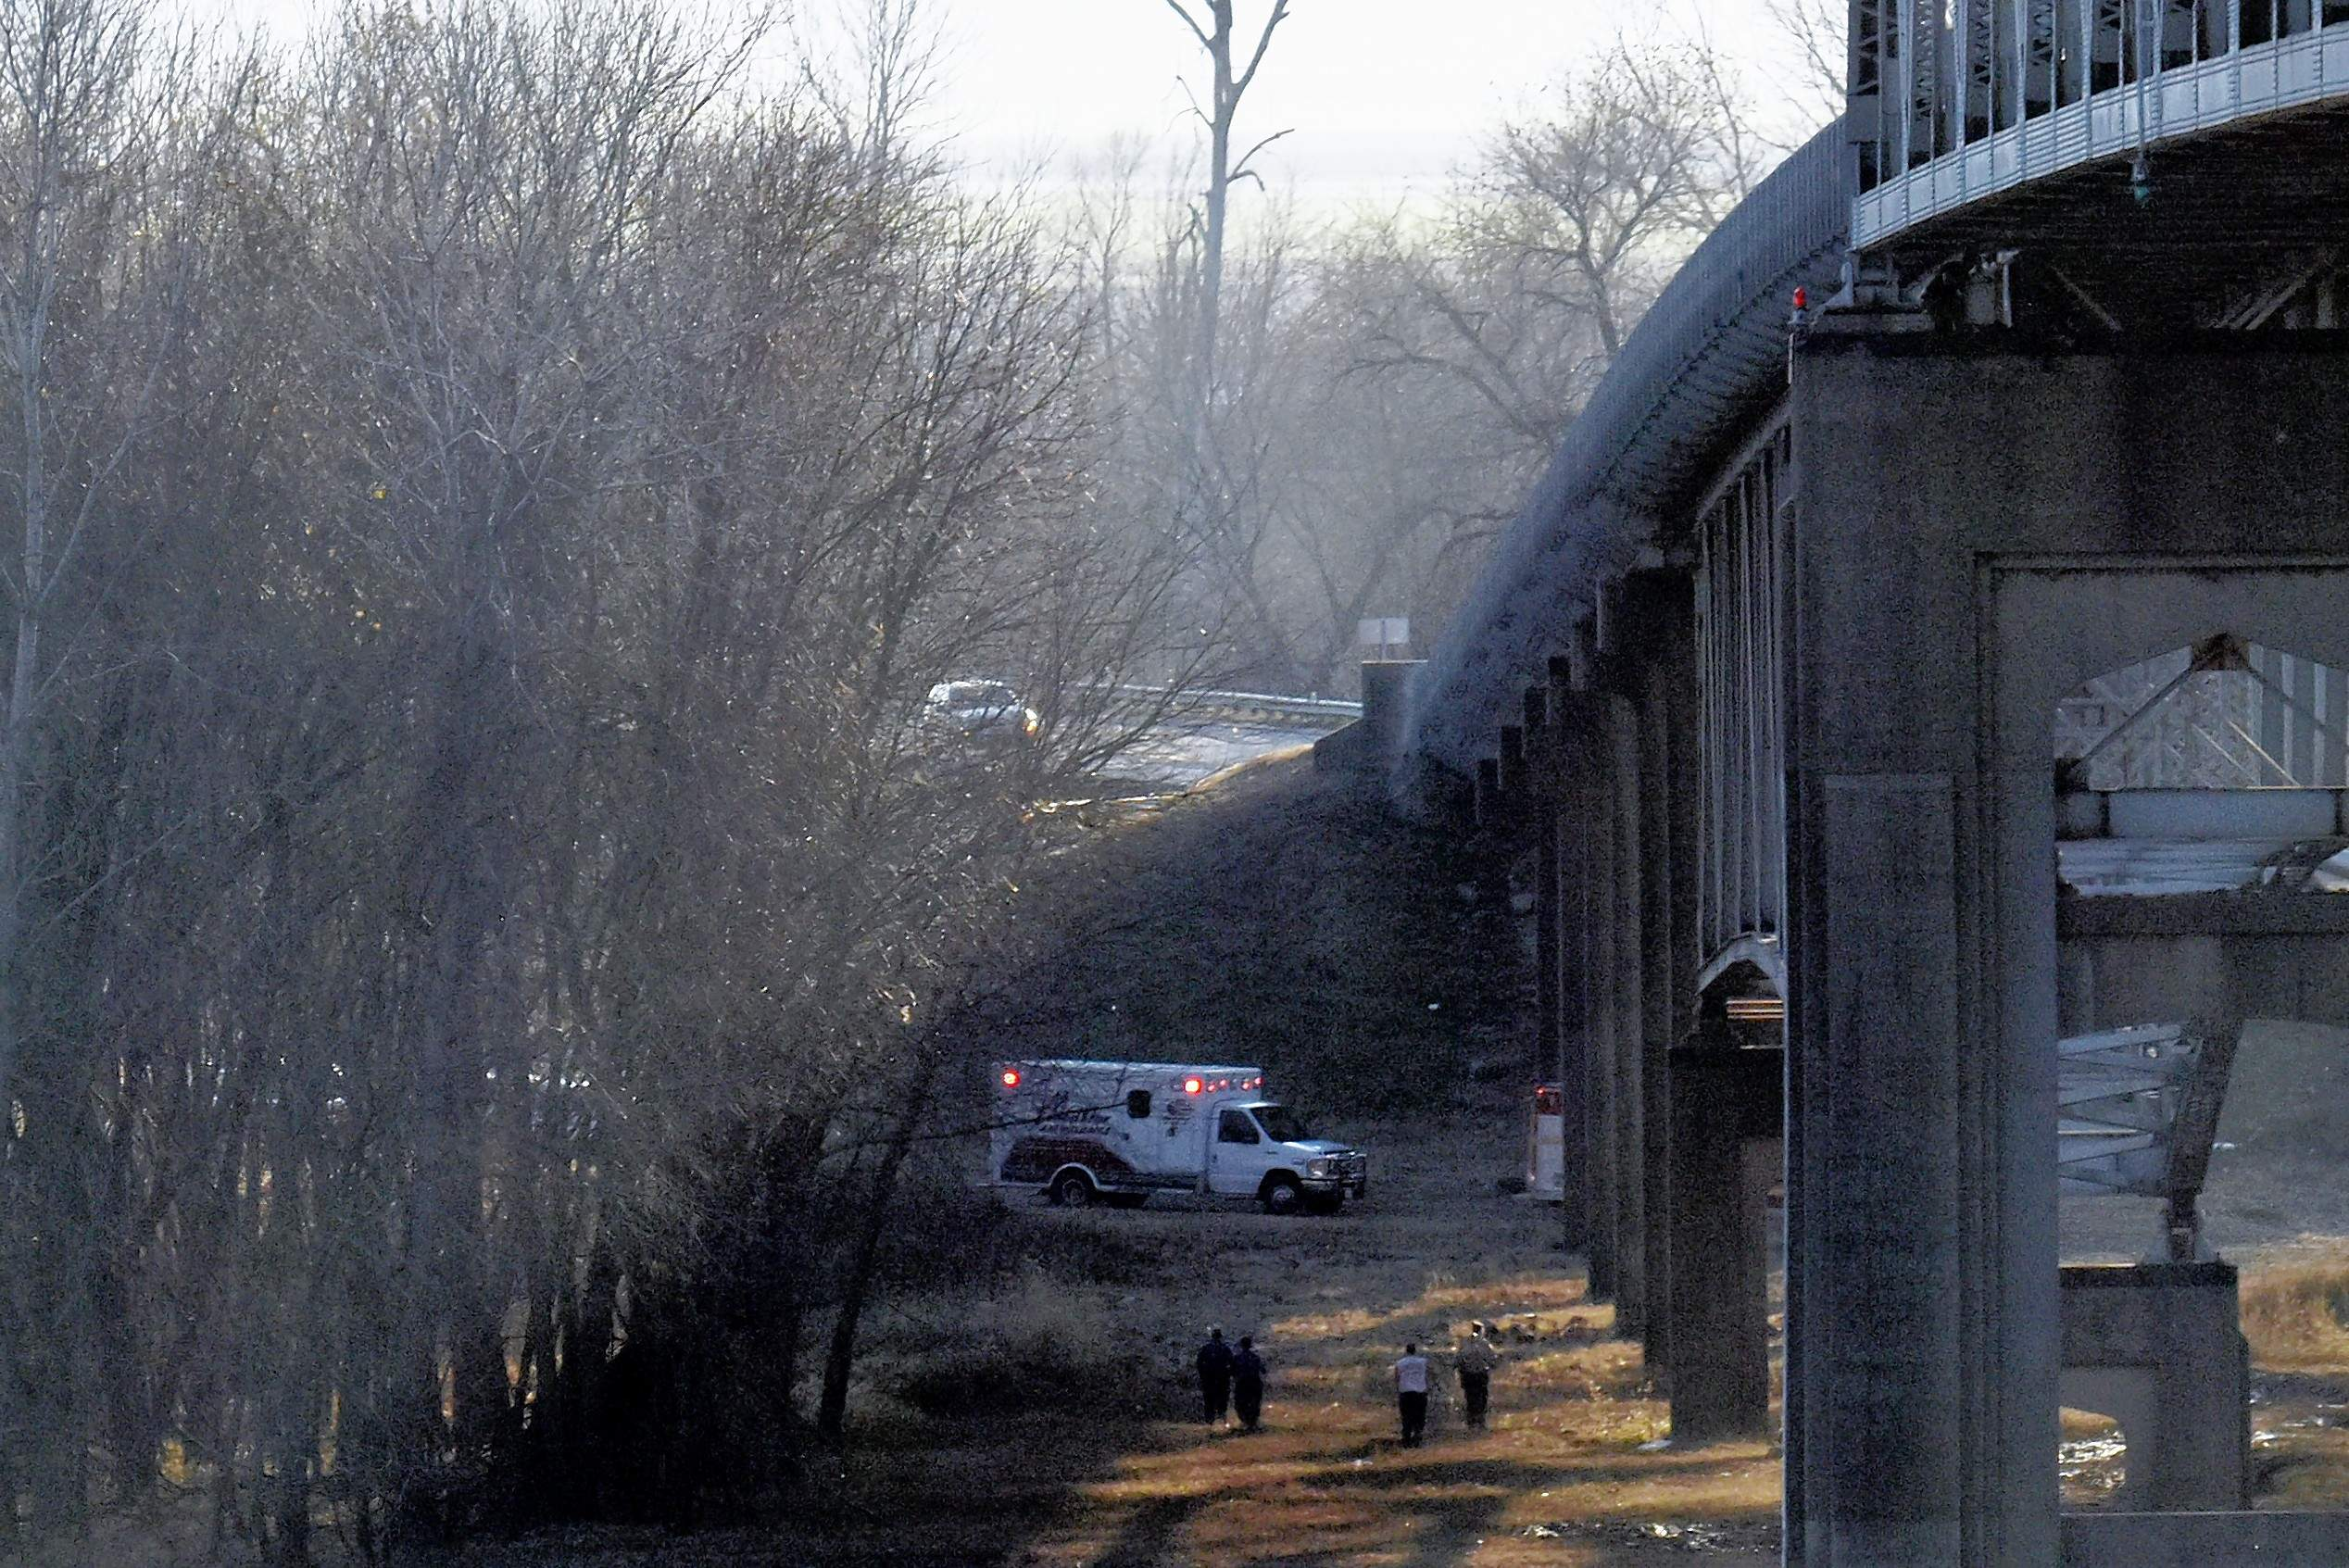 Emergency services personnel search below the Chester Bridge on Horse Island for a man reported to have either fallen or jumped off the bridge last Saturday. The unnamed man was safely taken into custody and is receiving help, according to Perry County (Missouri) Sheriff Gary Schaaf.